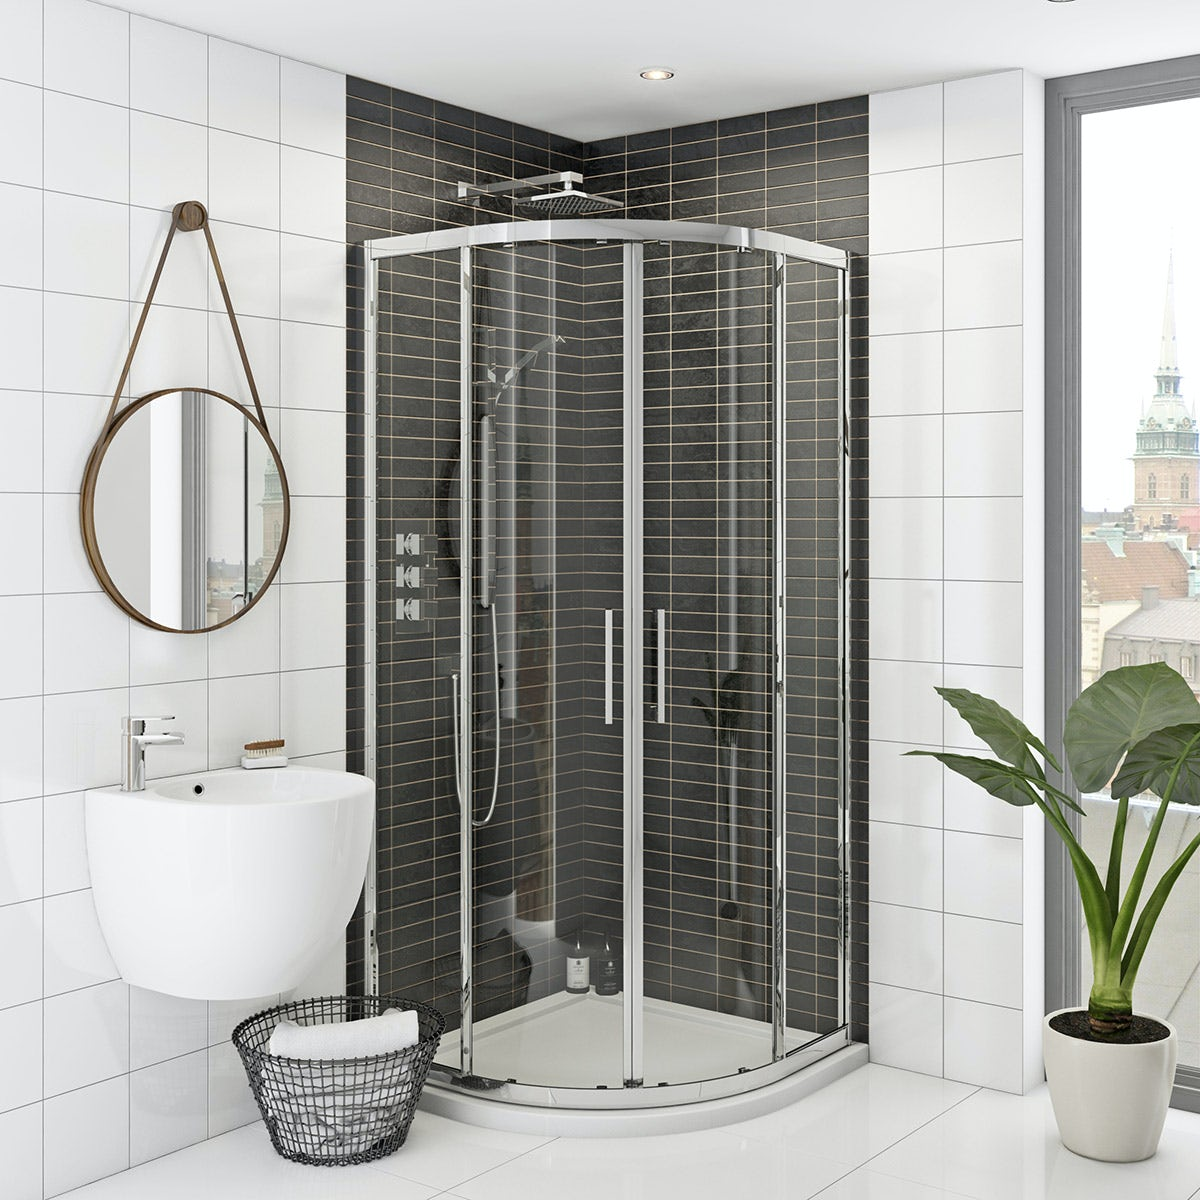 Bathroom Accessories Victoria Plumb bathroom suites, showers and accessories online - victoriaplum™